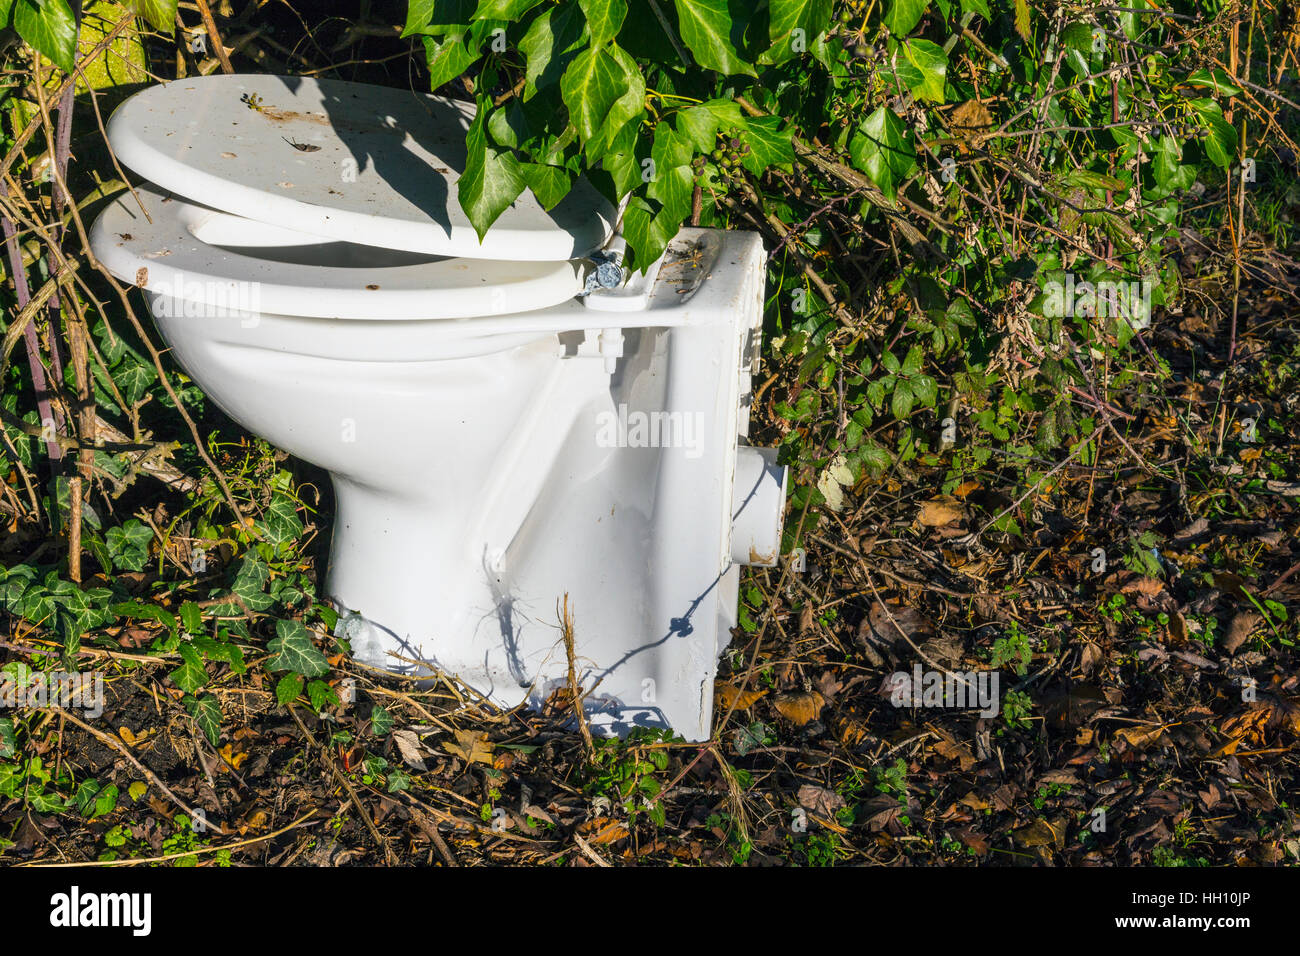 Old toilet by roadside - Stock Image